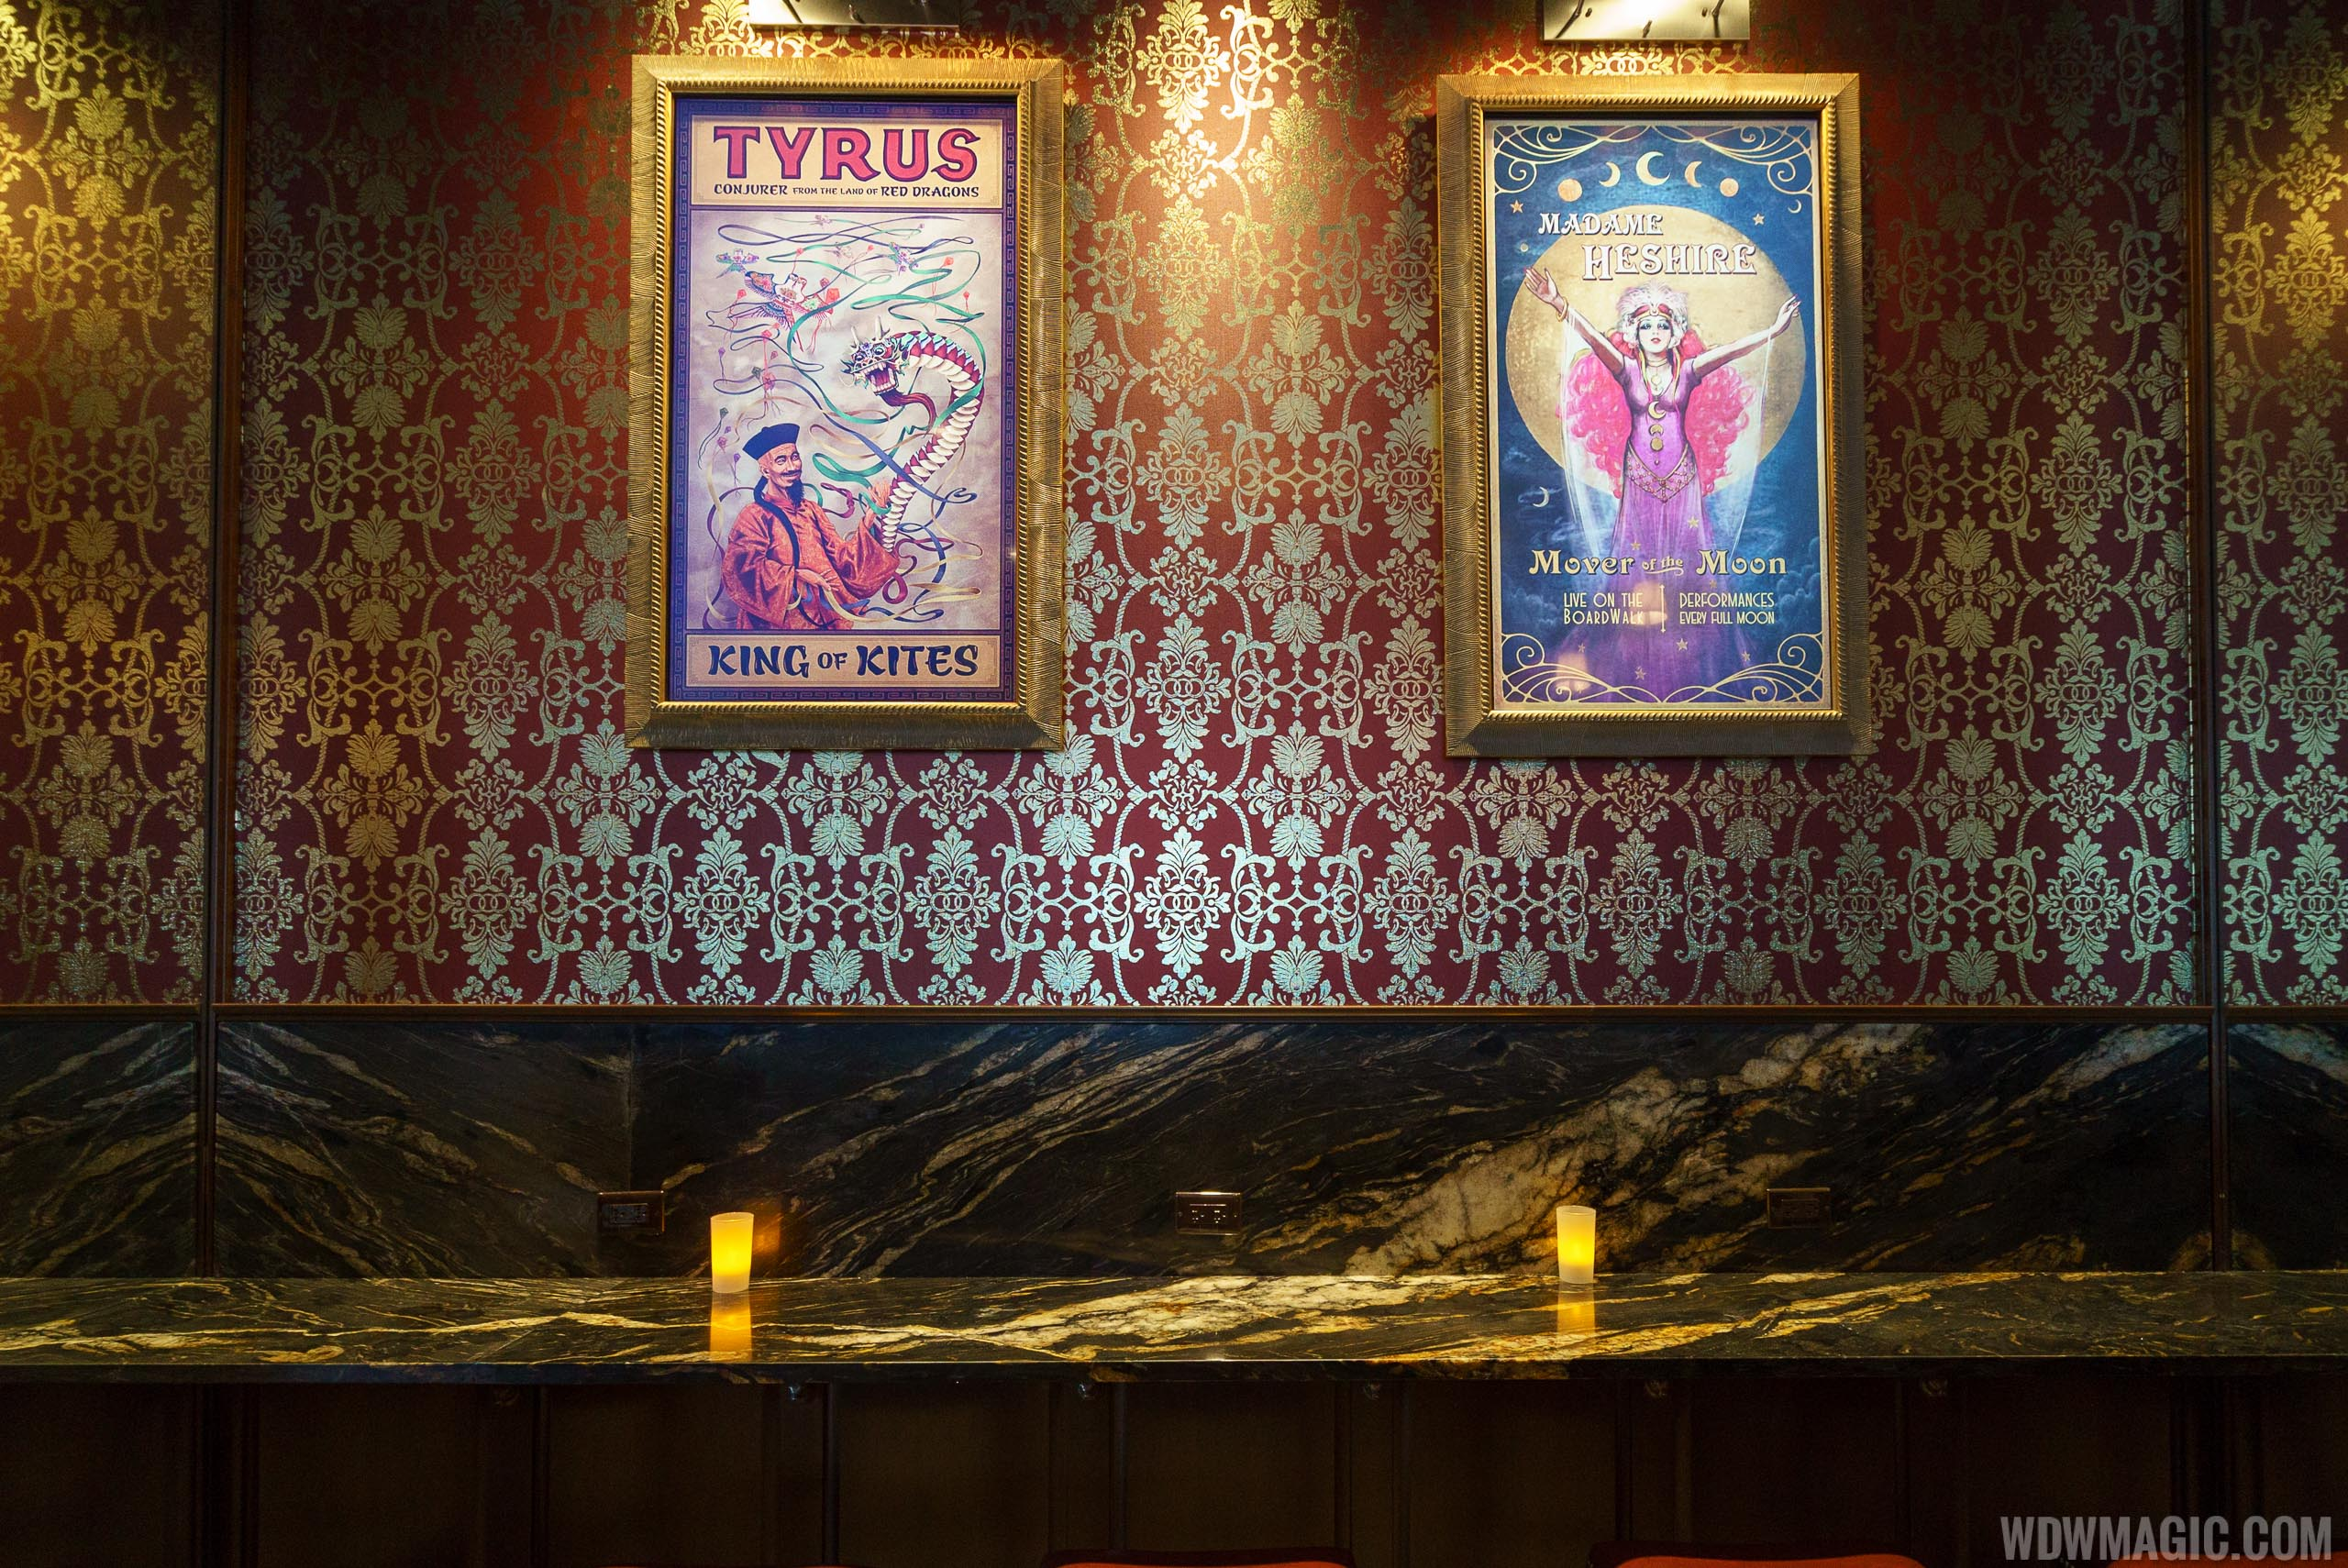 AbracadaBAR counter and enchanted posters